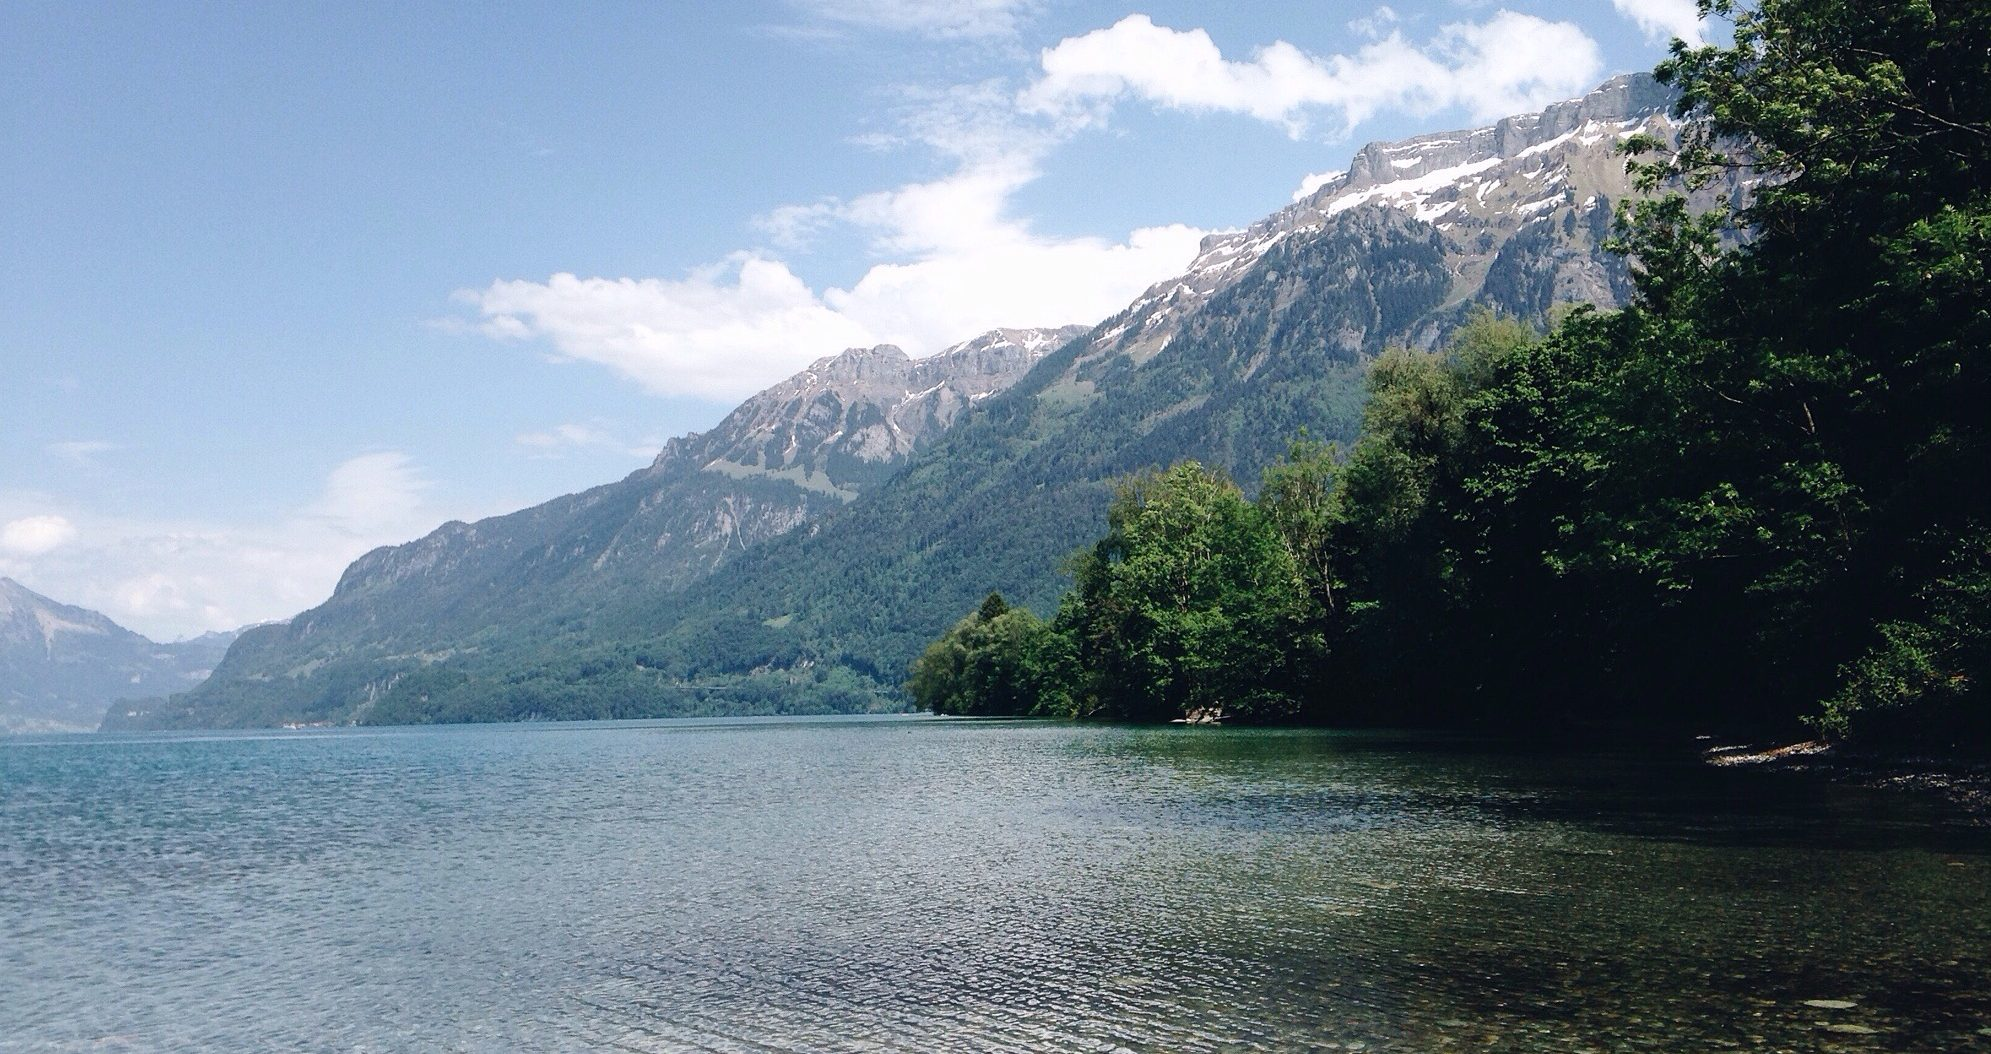 BACK TO THE HAPPY PLACE @ SWITZERLAND